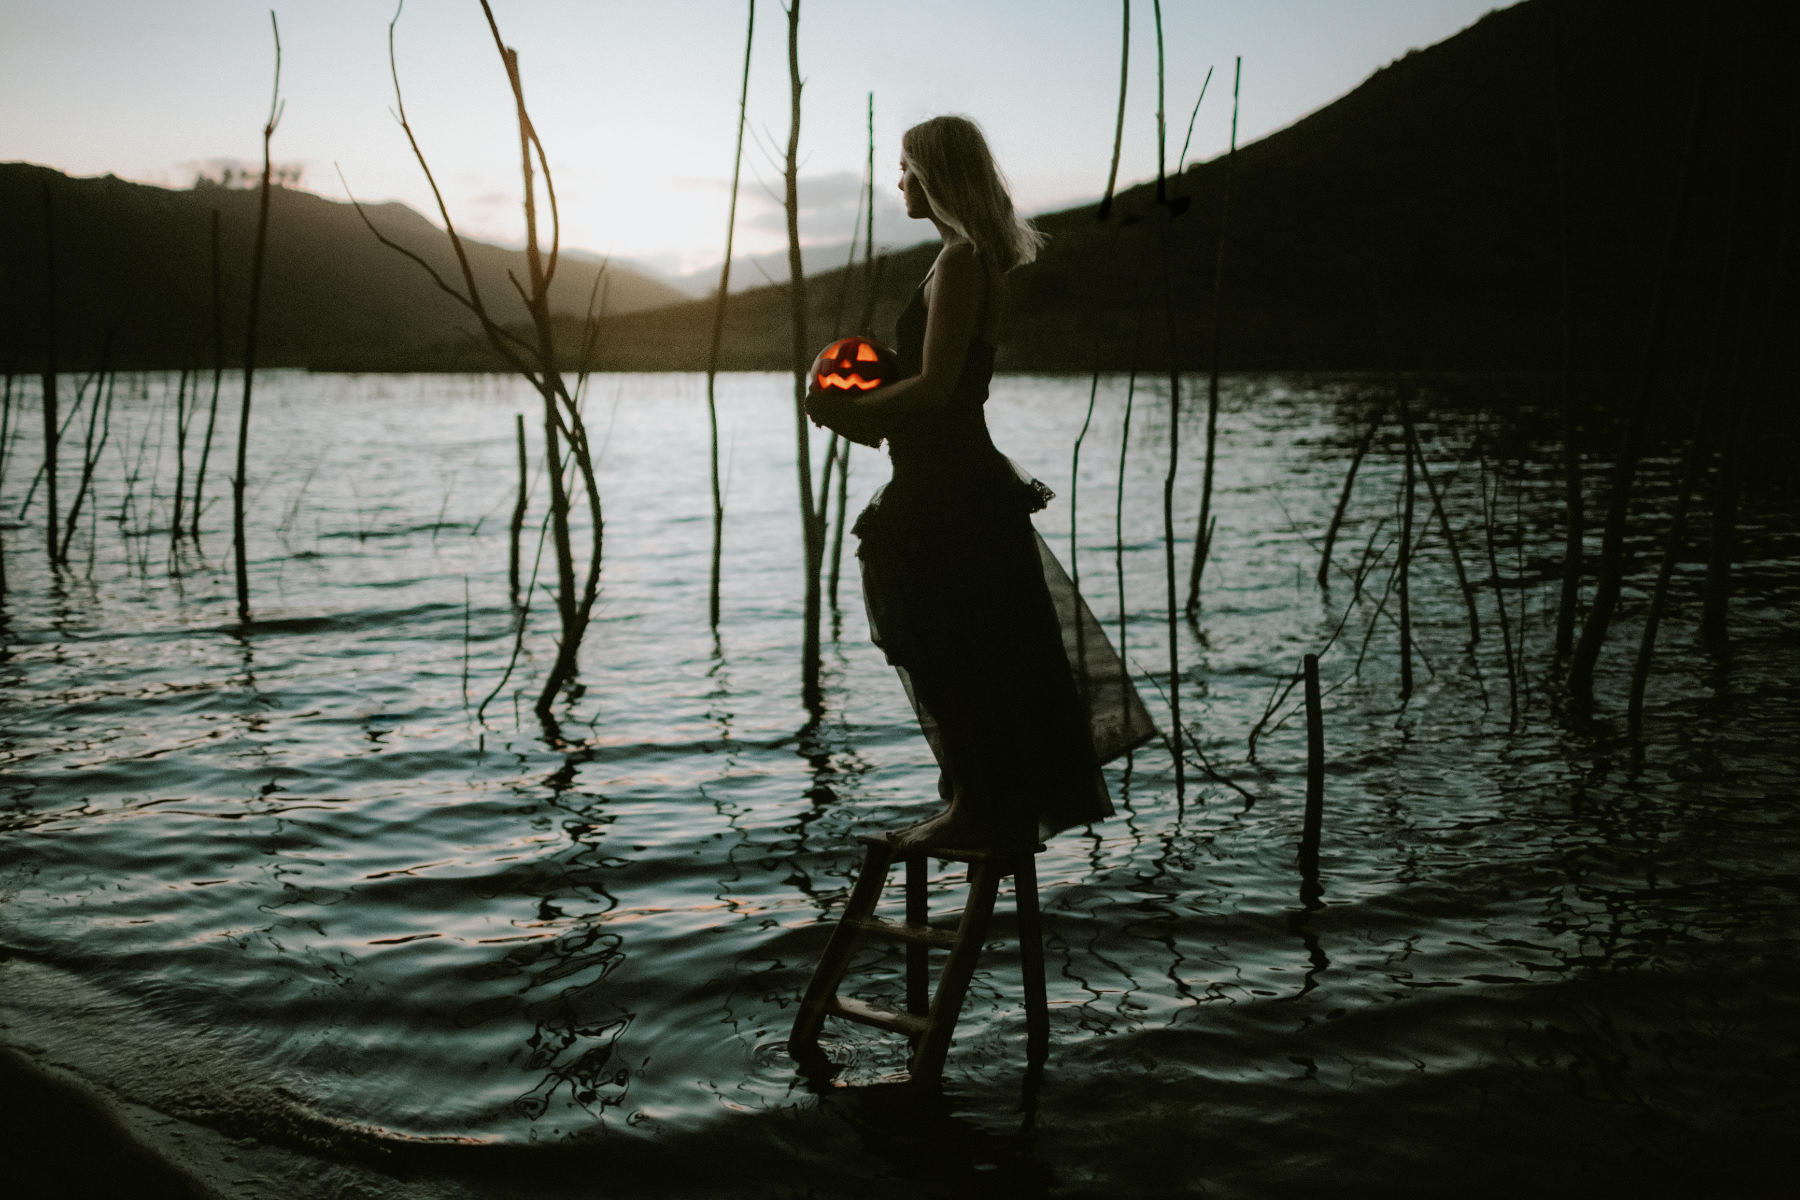 Model standing in a lake at sunset during Halloween holding a jack o lantern